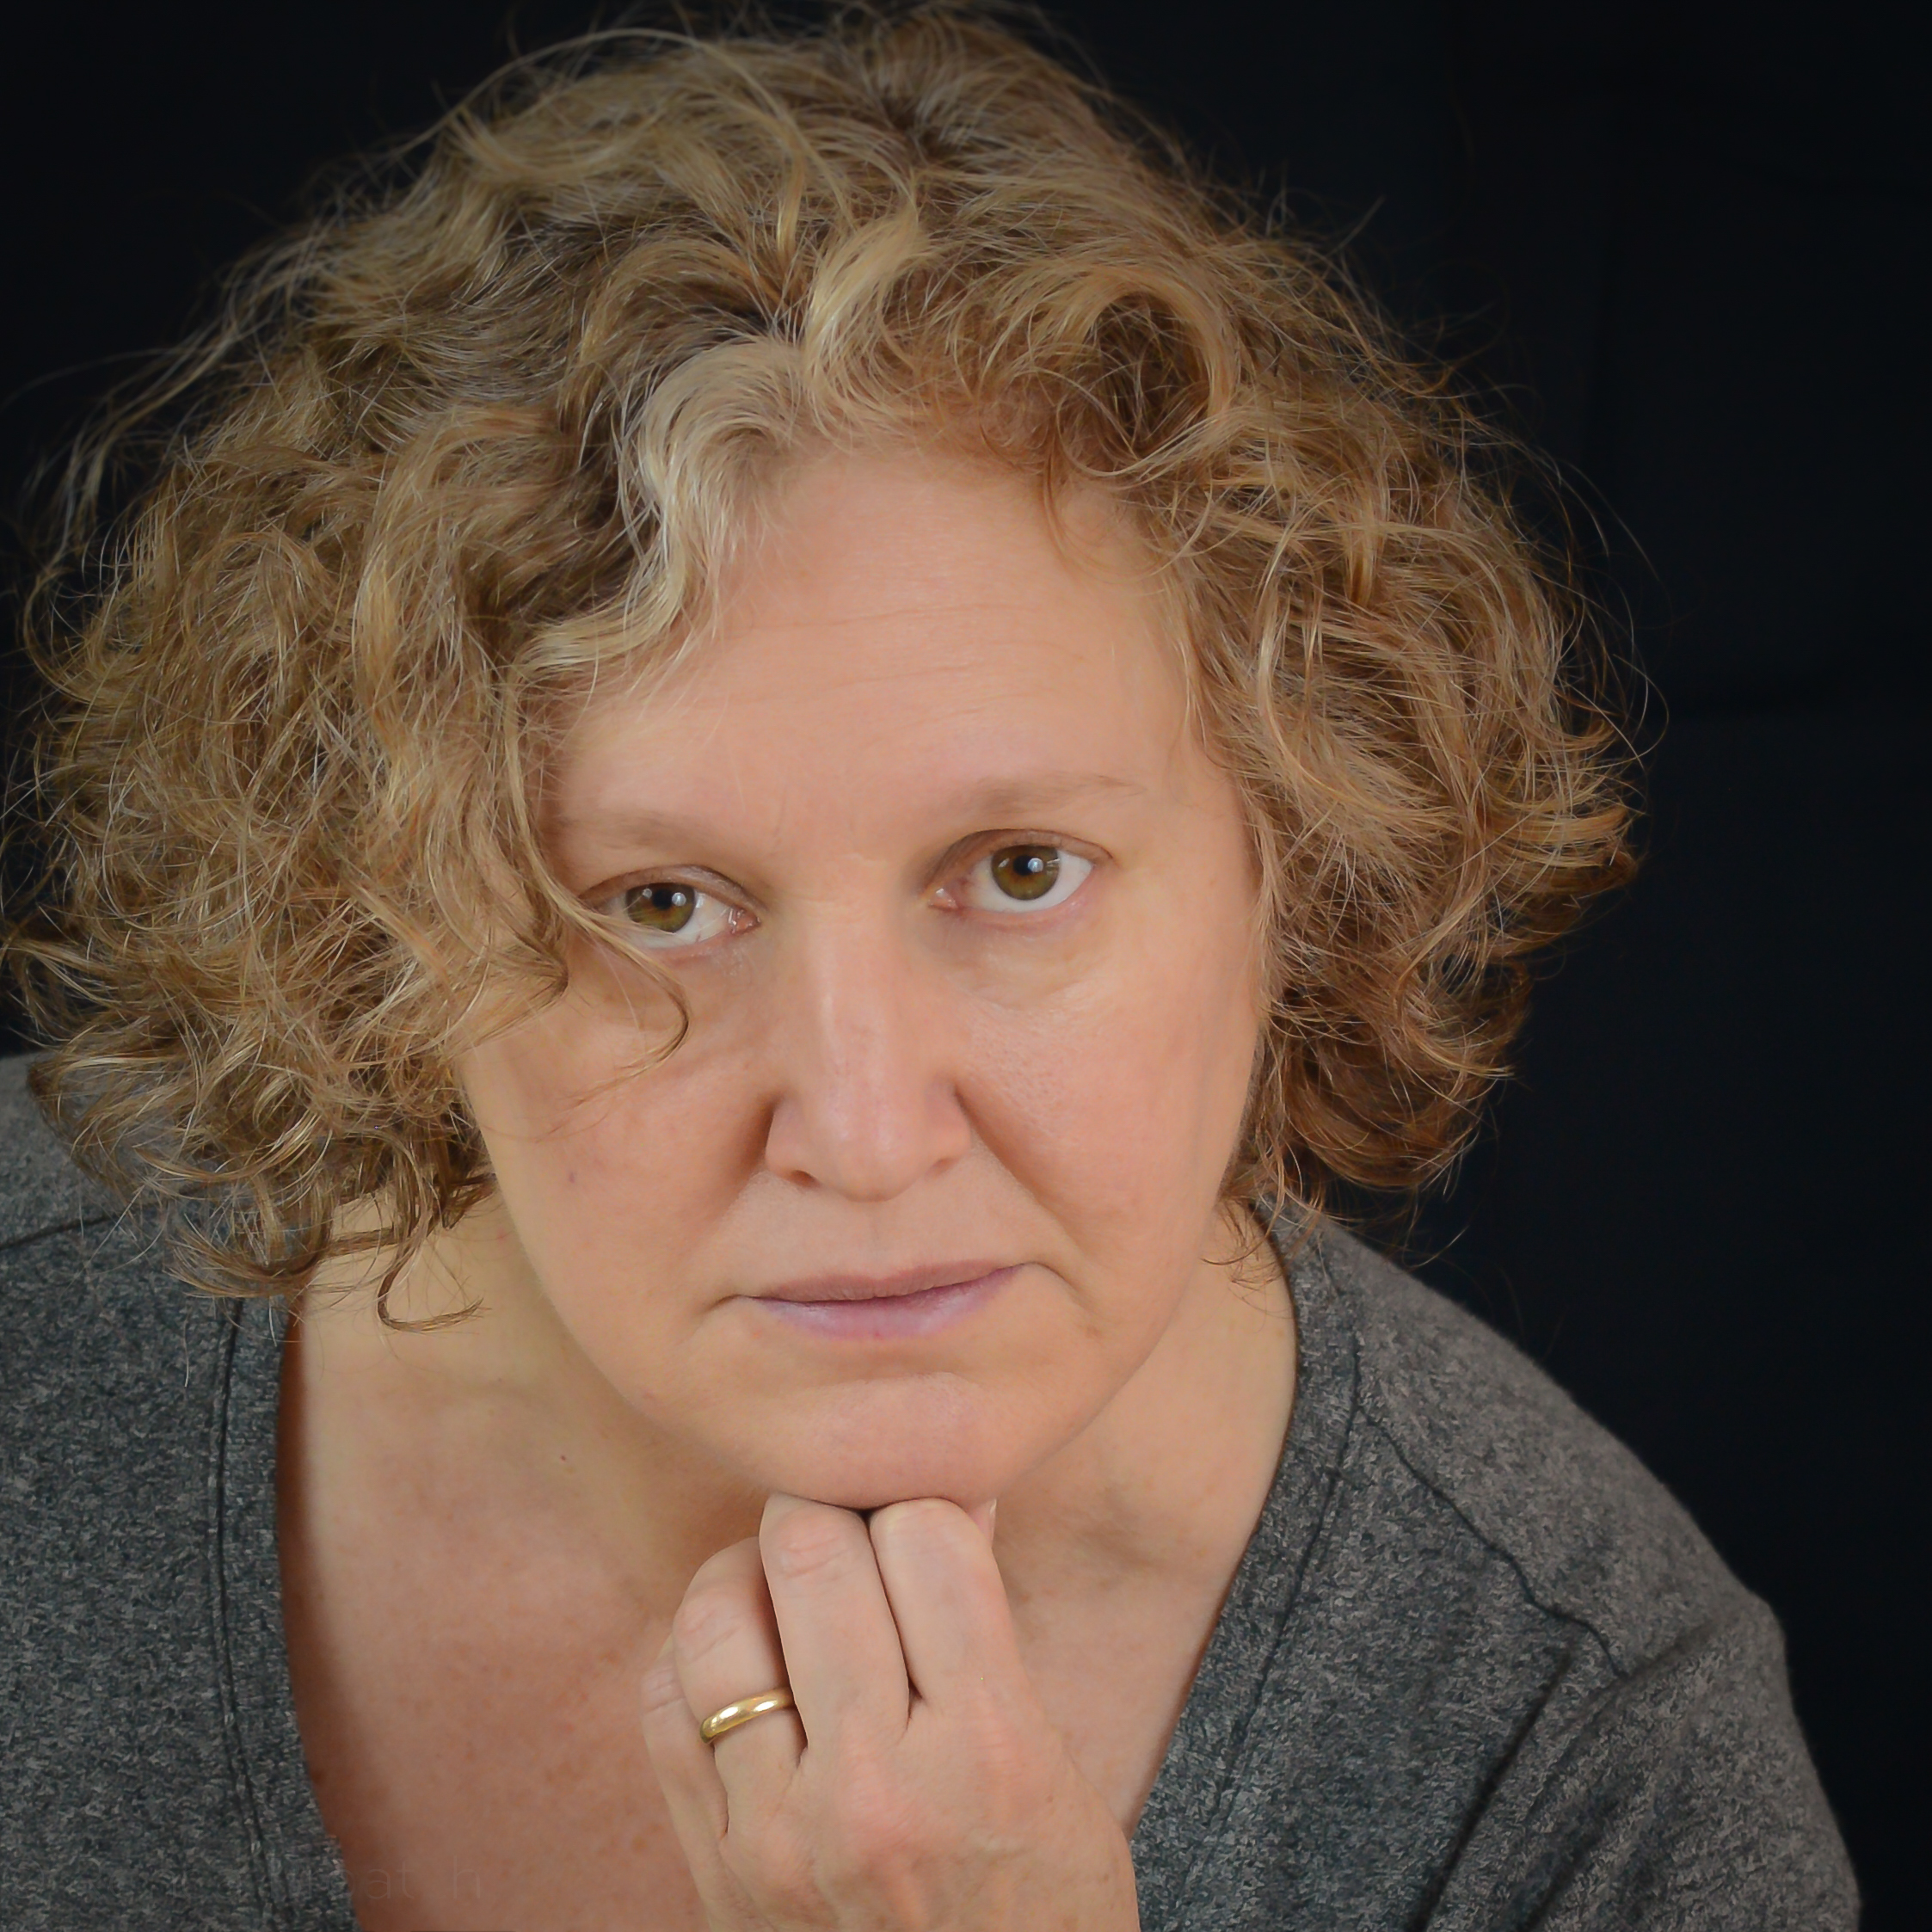 Ronda Piszk Broatch - Poet and photographer Ronda Piszk Broatch is the author of Lake of Fallen Constellations, (MoonPath Press, 2015). Seven-time Pushcart Prize nominee, Ronda is the recipient of an Artist Trust GAP Grant, is a May Swenson Poetry Award finalist, and is the former editor of Crab Creek Review. Her journal publications include Sycamore Review, Prairie Schooner, Mid-American Review, Public Radio KUOW's All Things Considered, and work is forthcoming in Blackbird.Headshot: Ronda Piszk Broatch